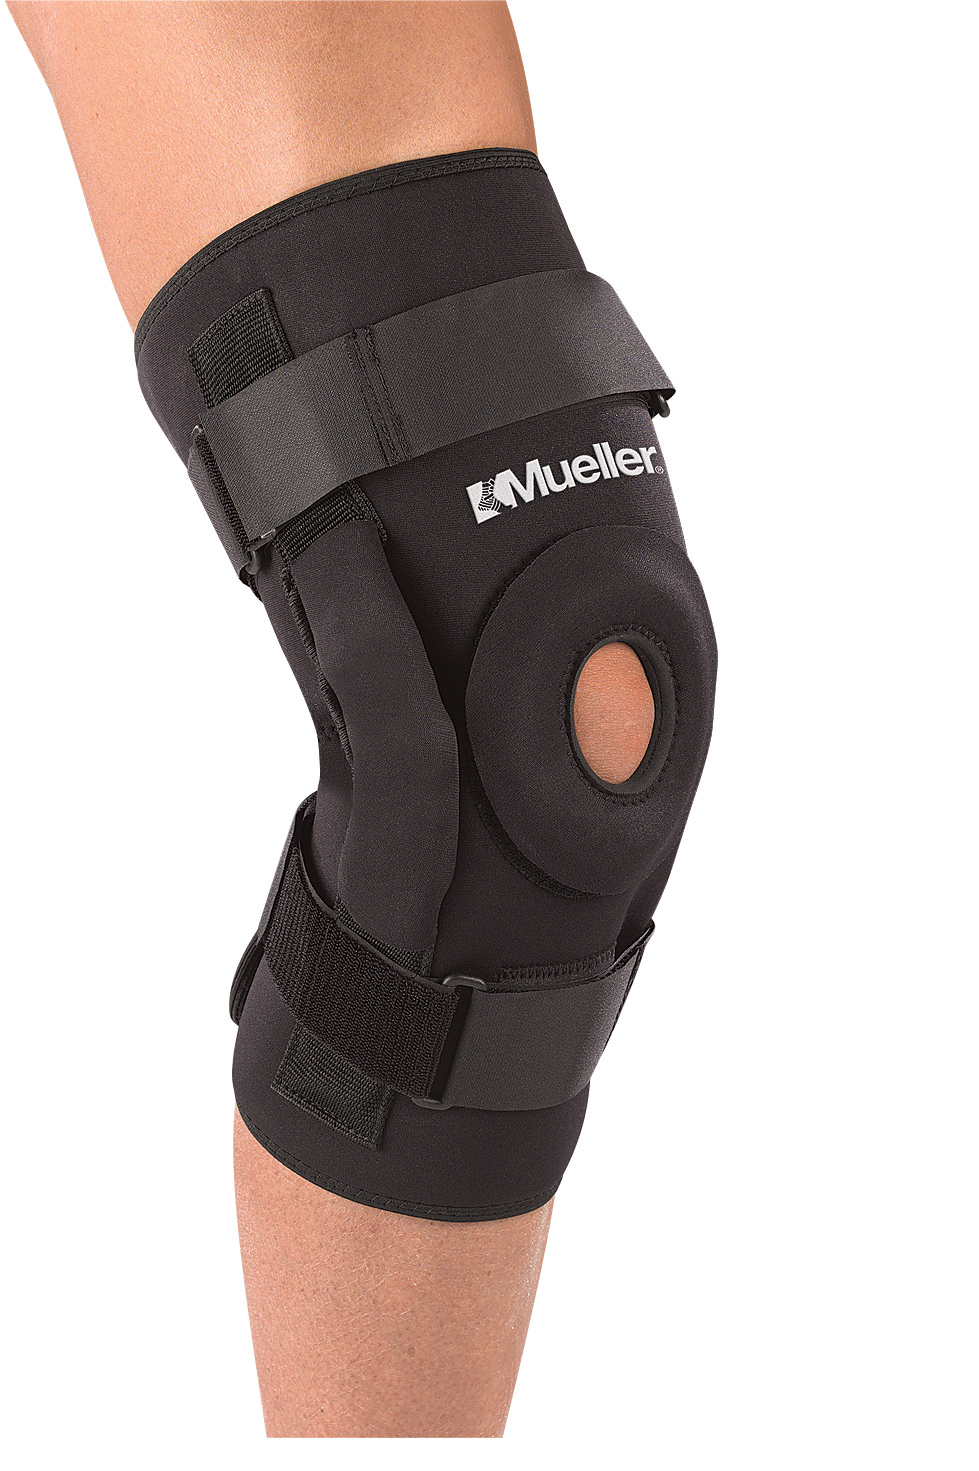 pro-level-hinged-knee-brace-deluxe-md-5333md-74676533322-lr.jpg